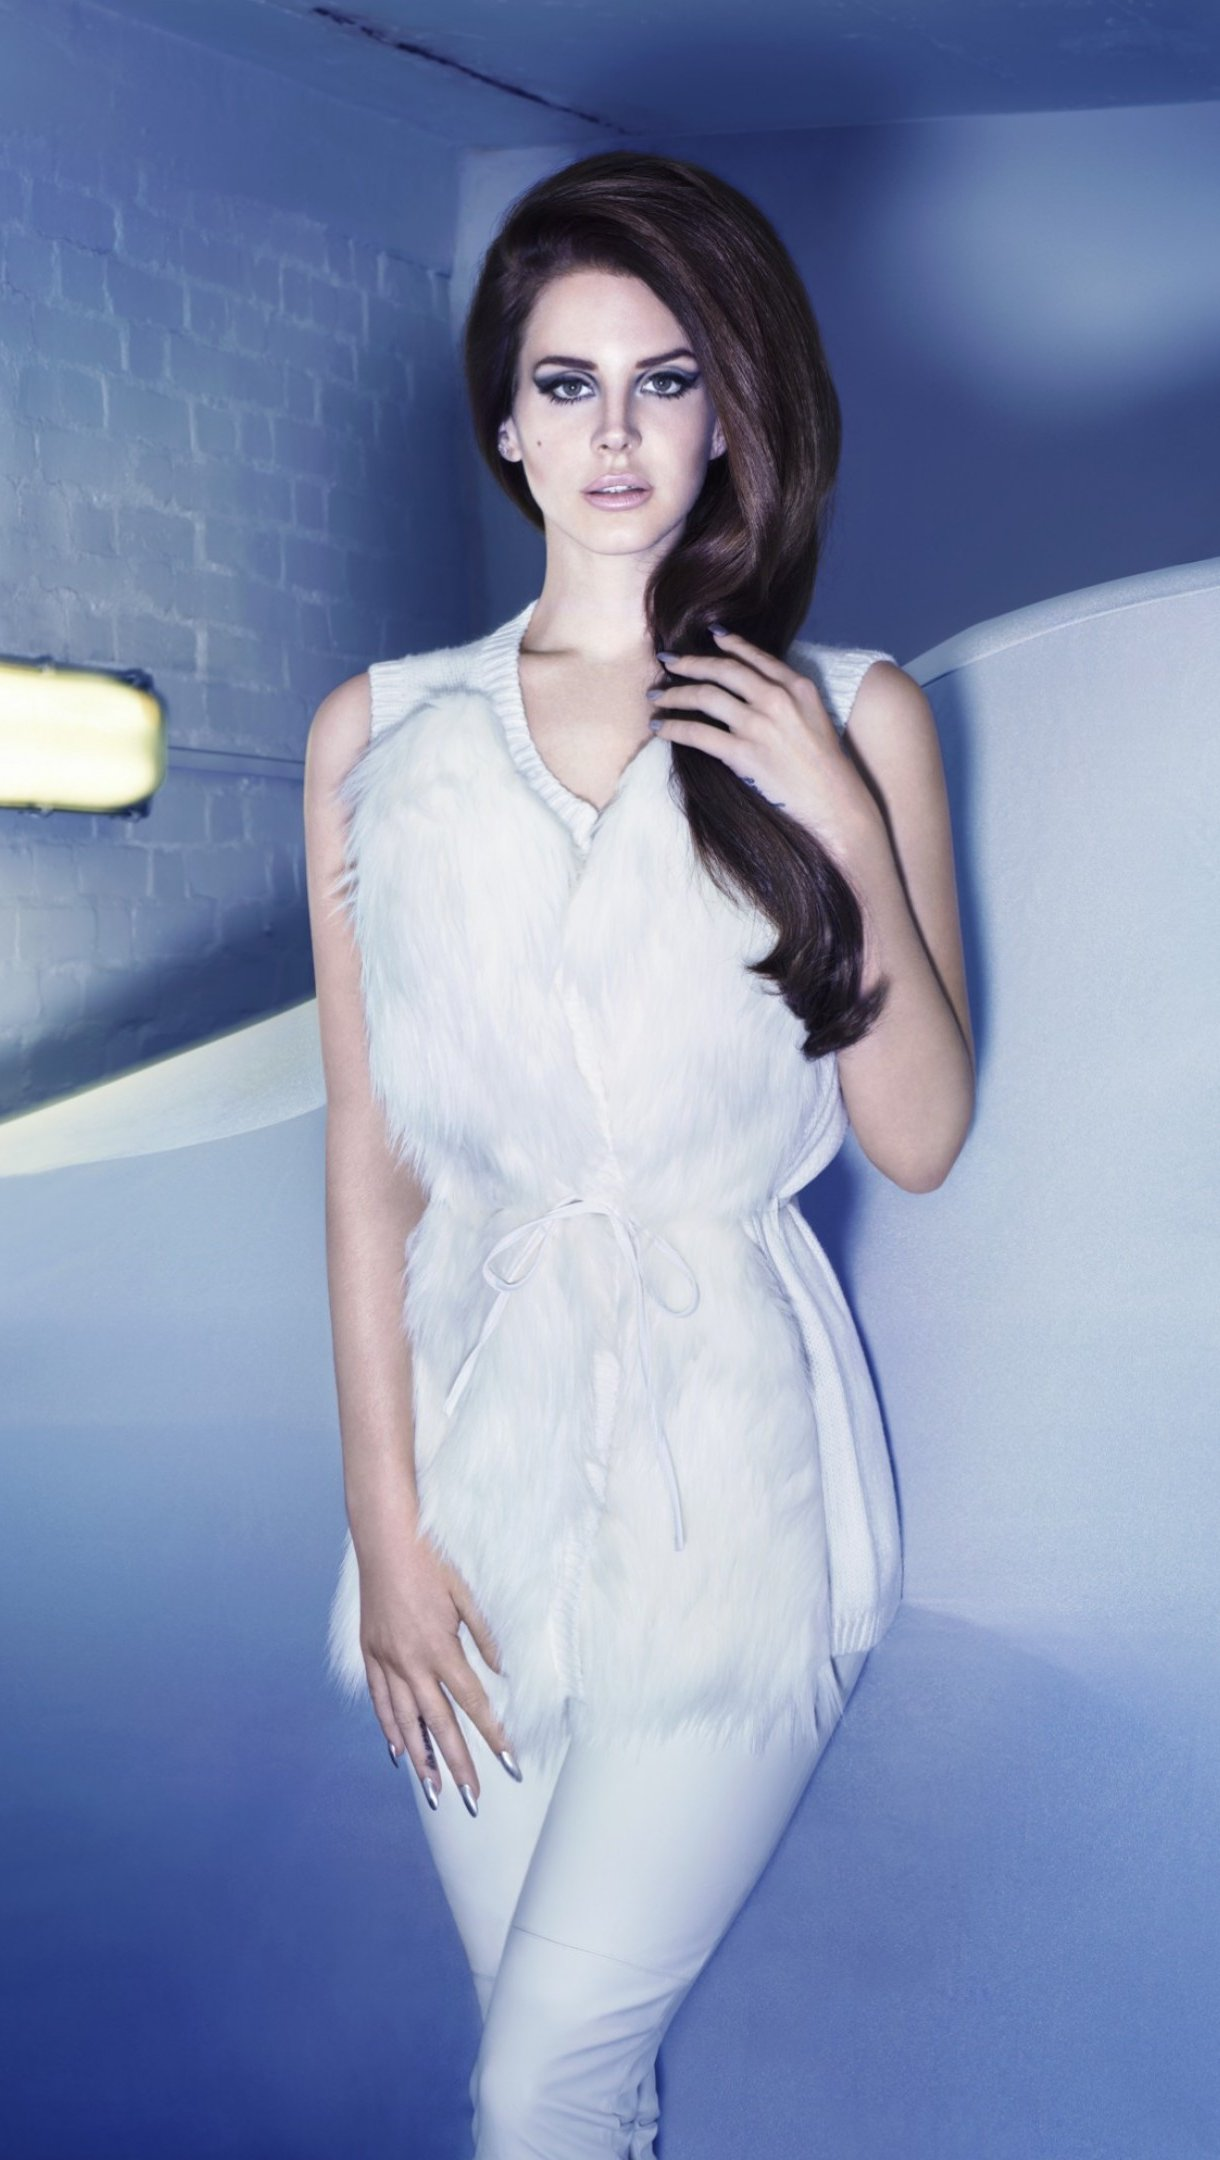 Wallpaper Lana del rey photoshoot Vertical